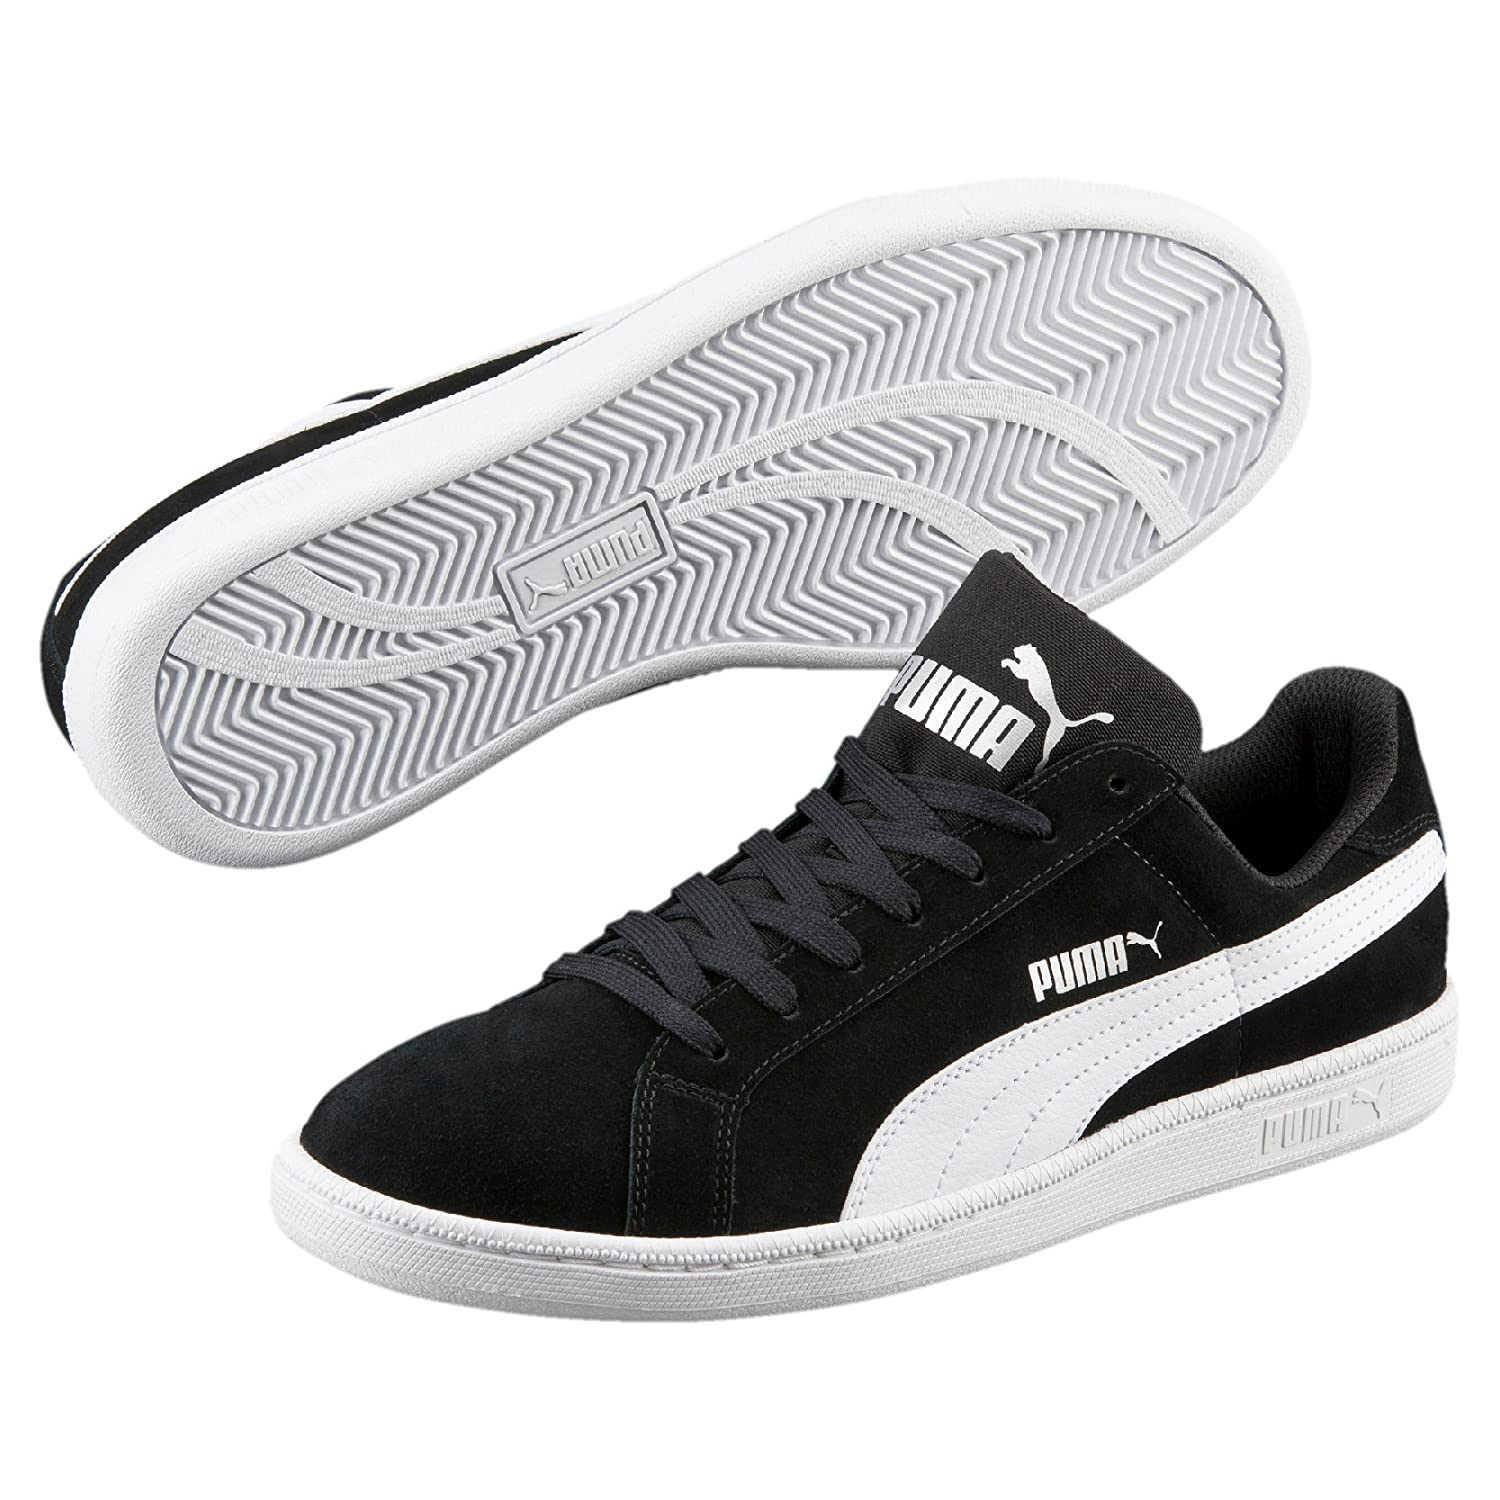 3faf7c13 Puma Smash Sd, Unisex Adults' Low-Top Sneakers